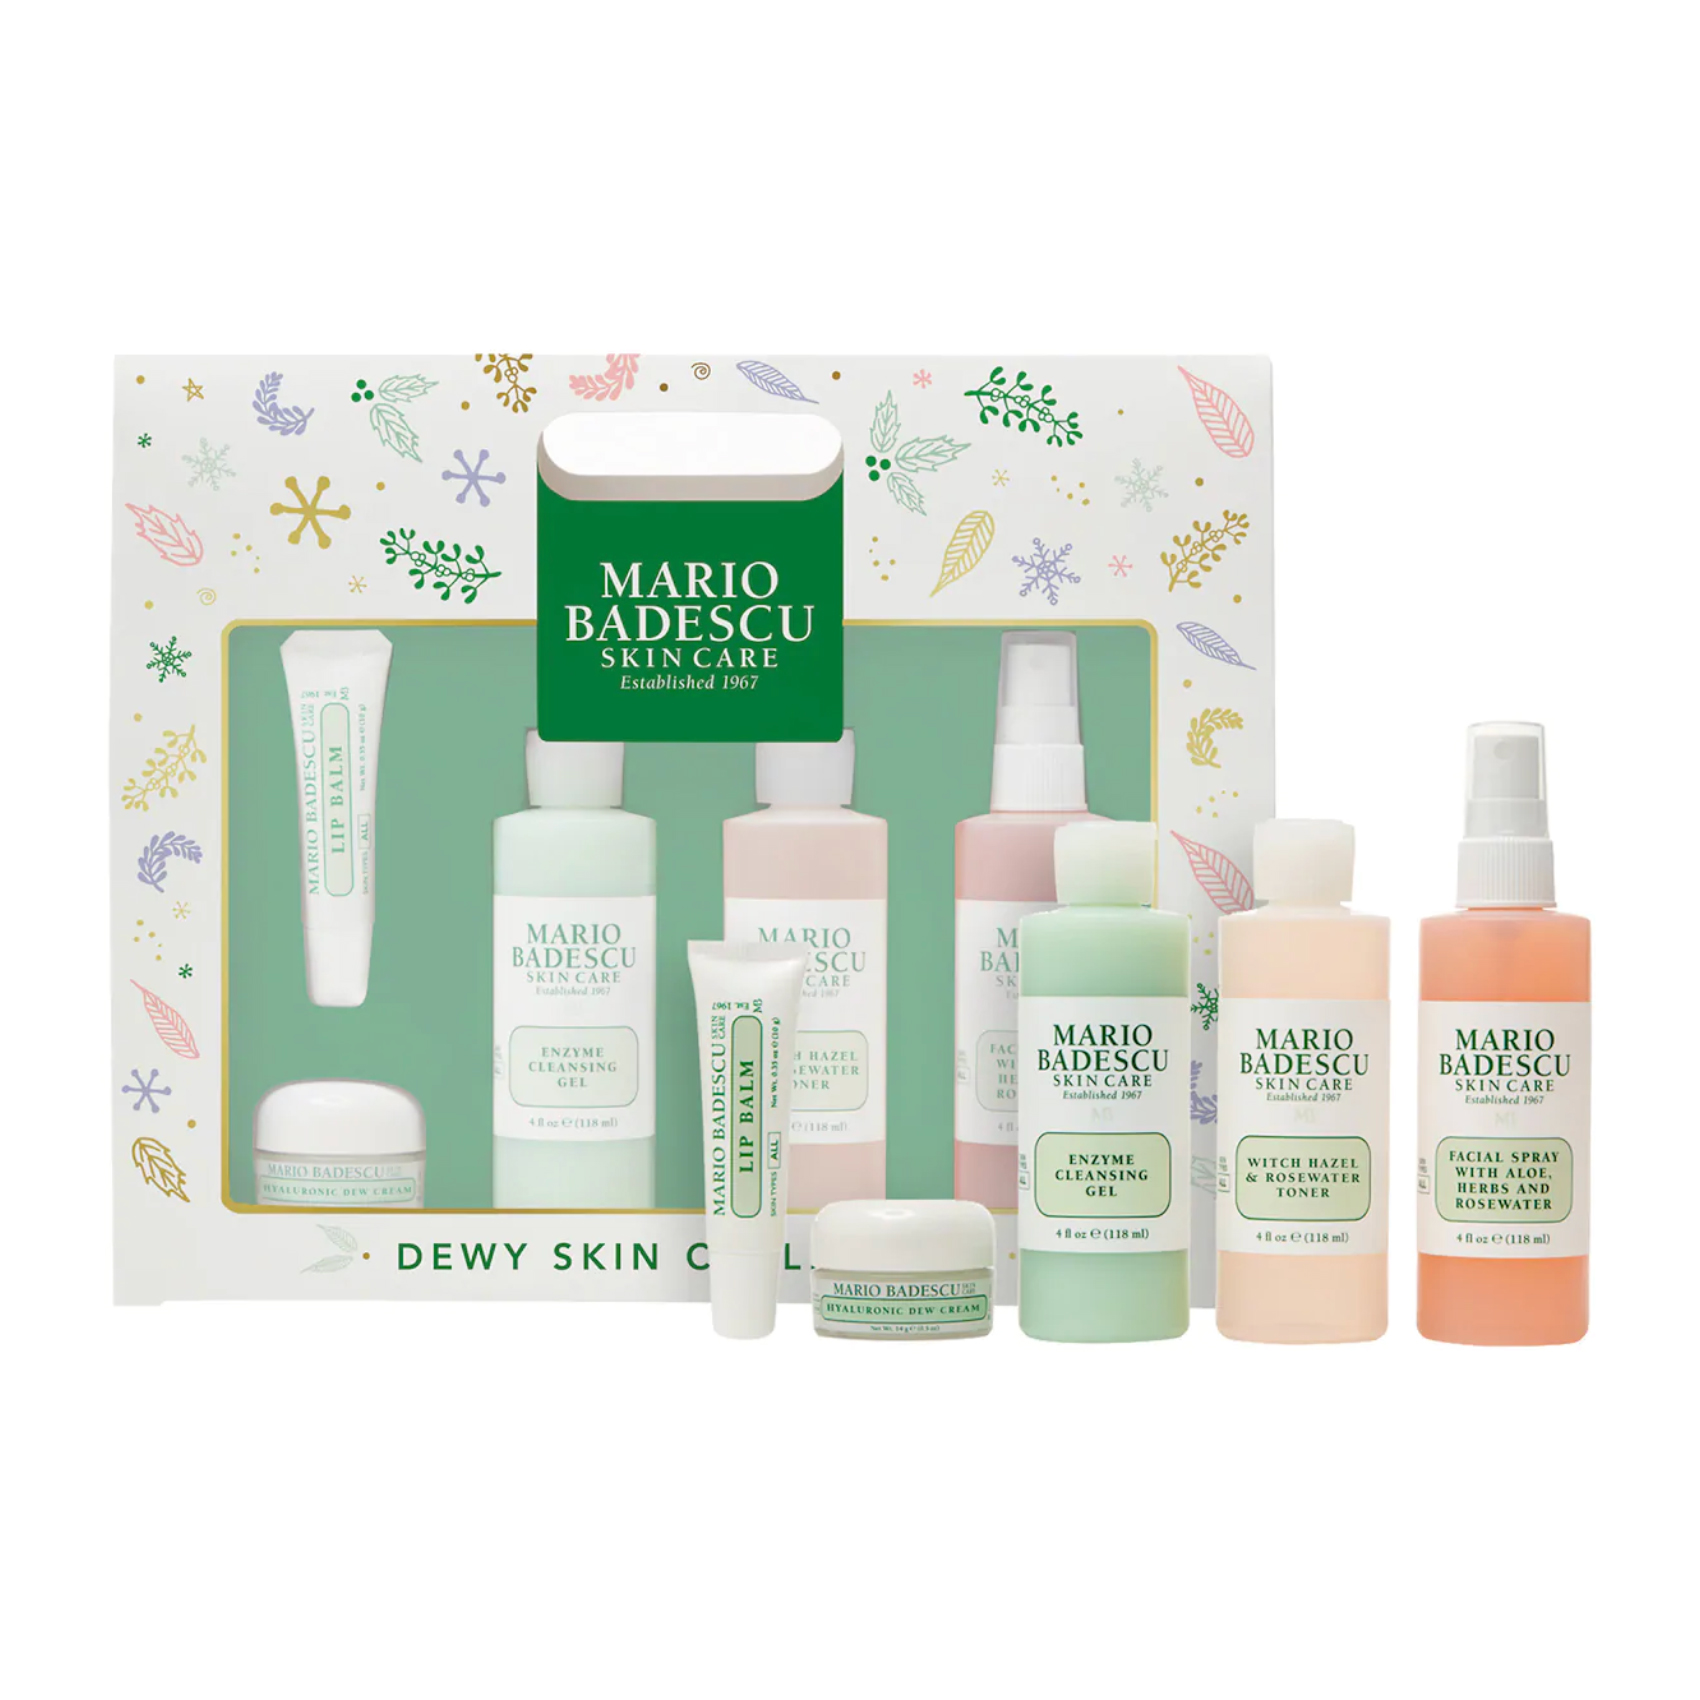 Mario Badescu Dewy Skin Collection